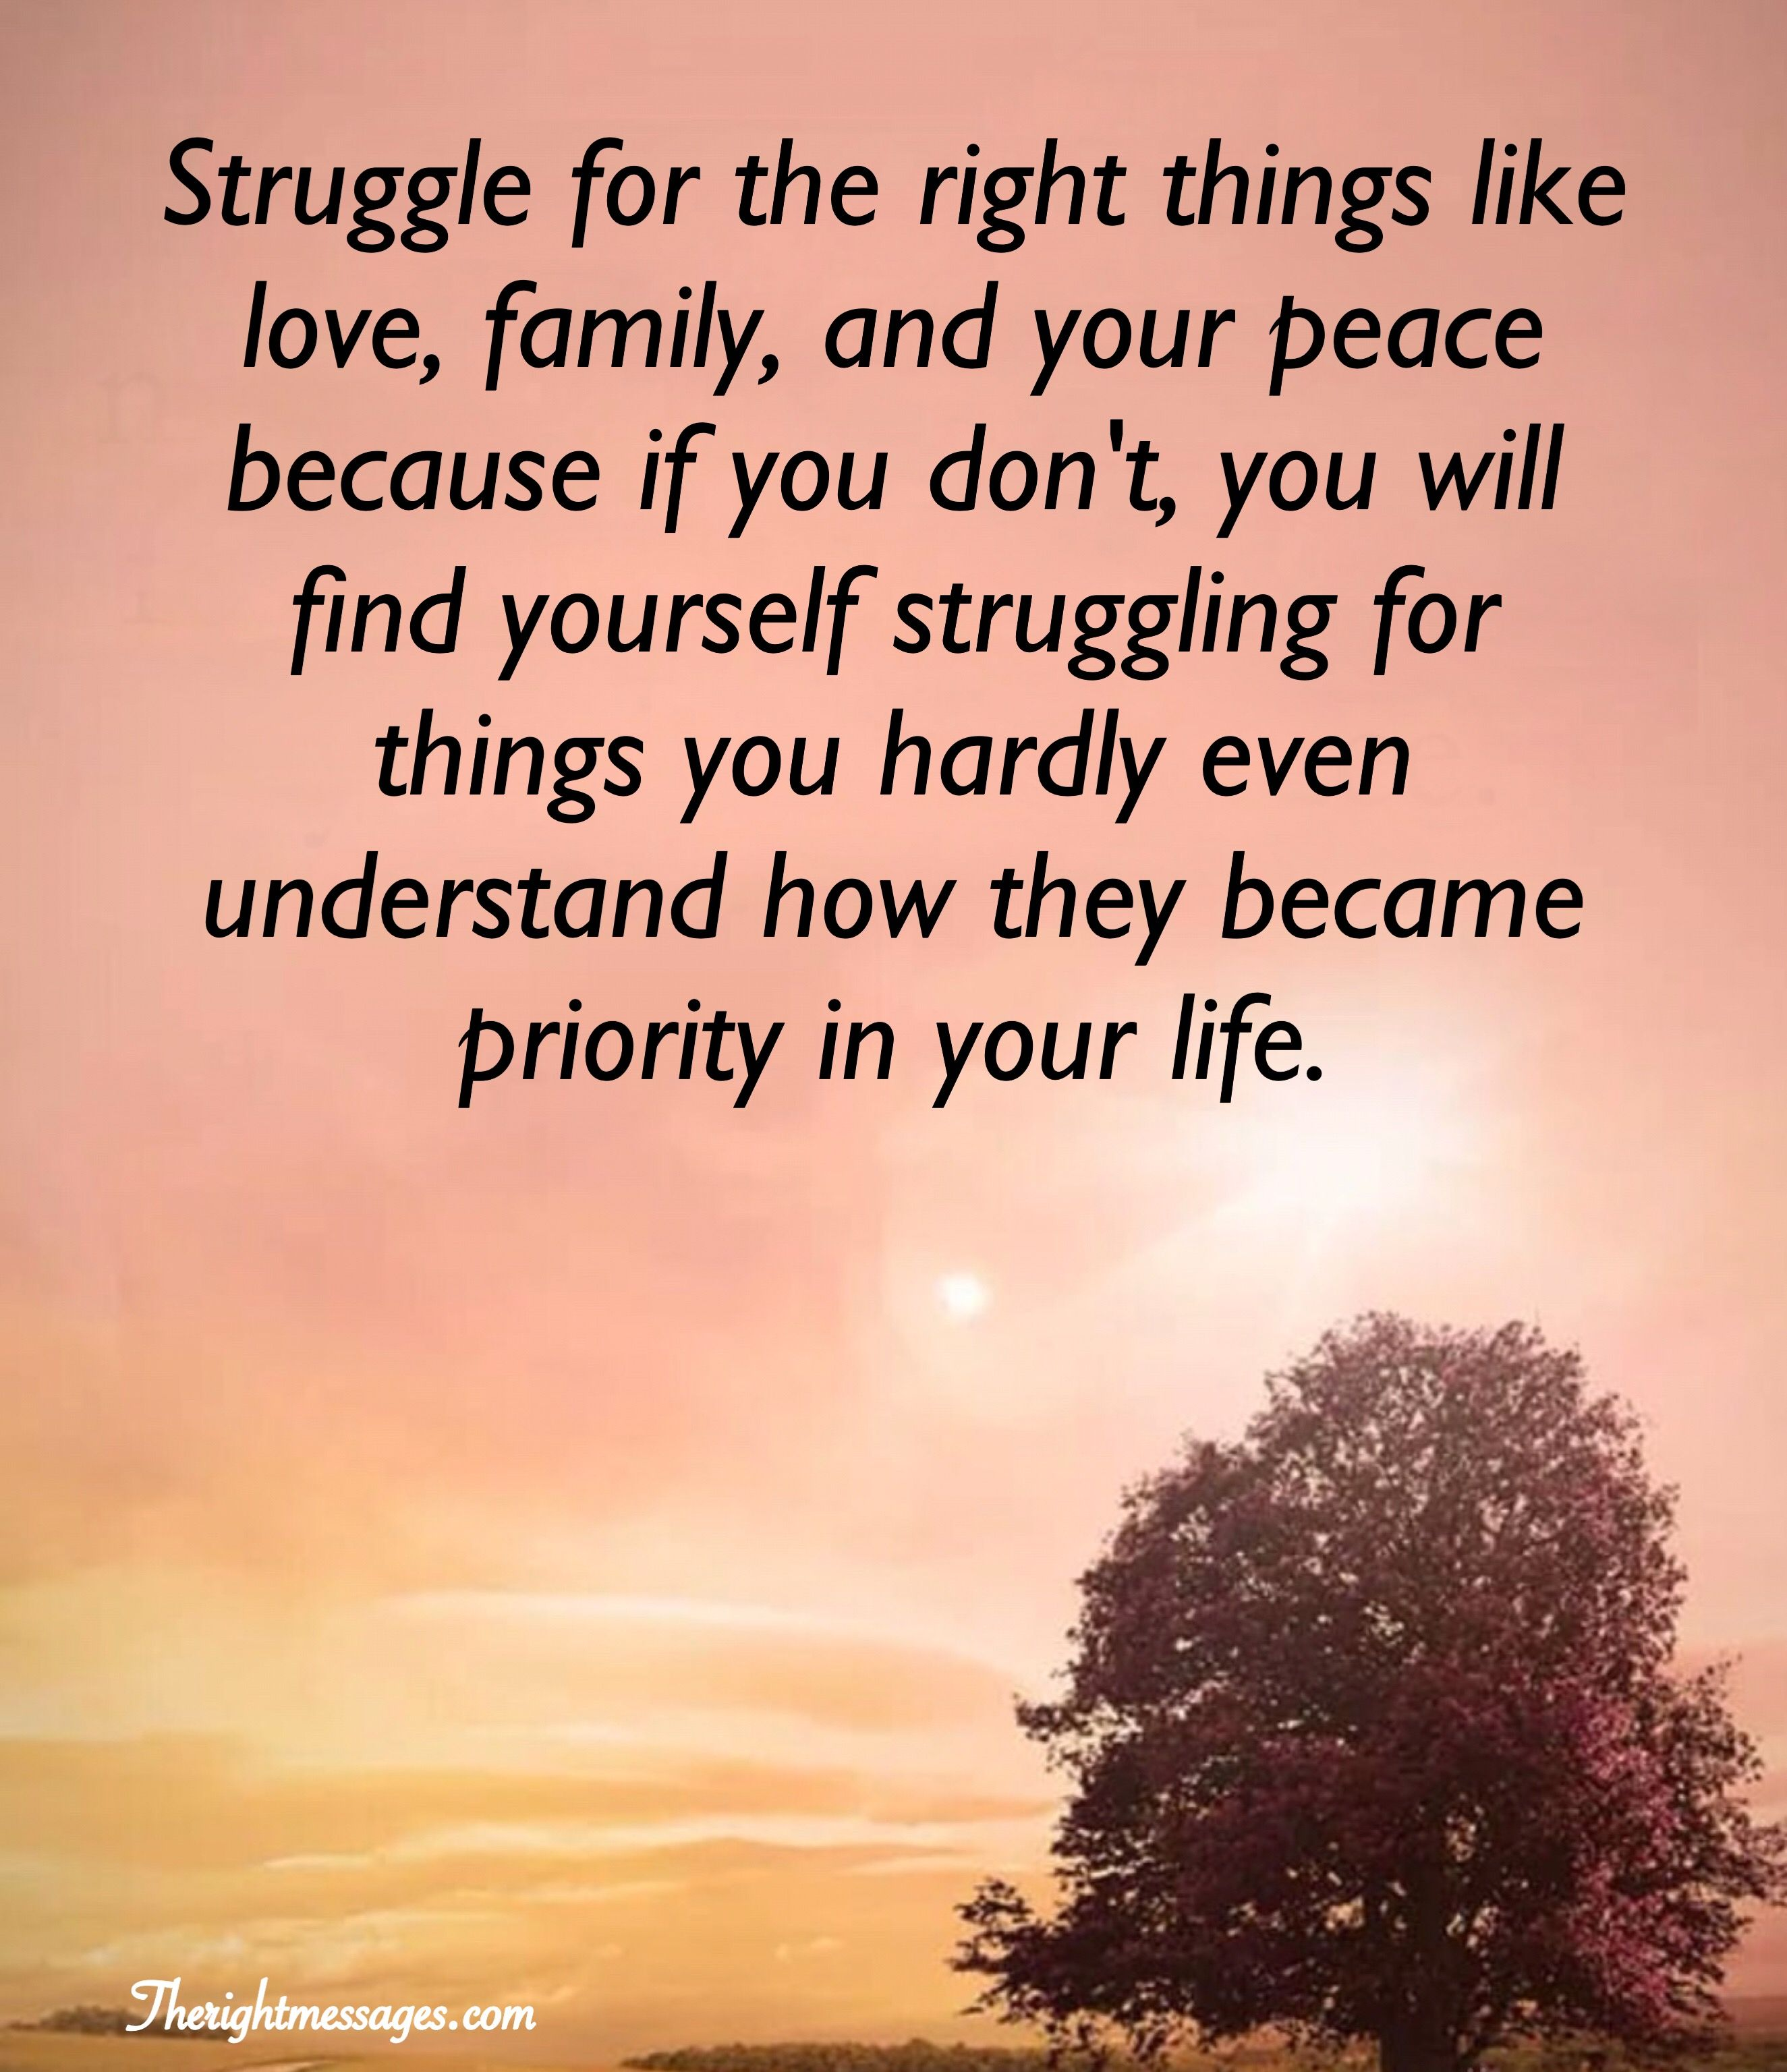 31 Inspirational Quotes About Life And Struggles The Right Messages Inspiring Quotes About Life Movie Quotes Inspirational Cute Inspirational Quotes